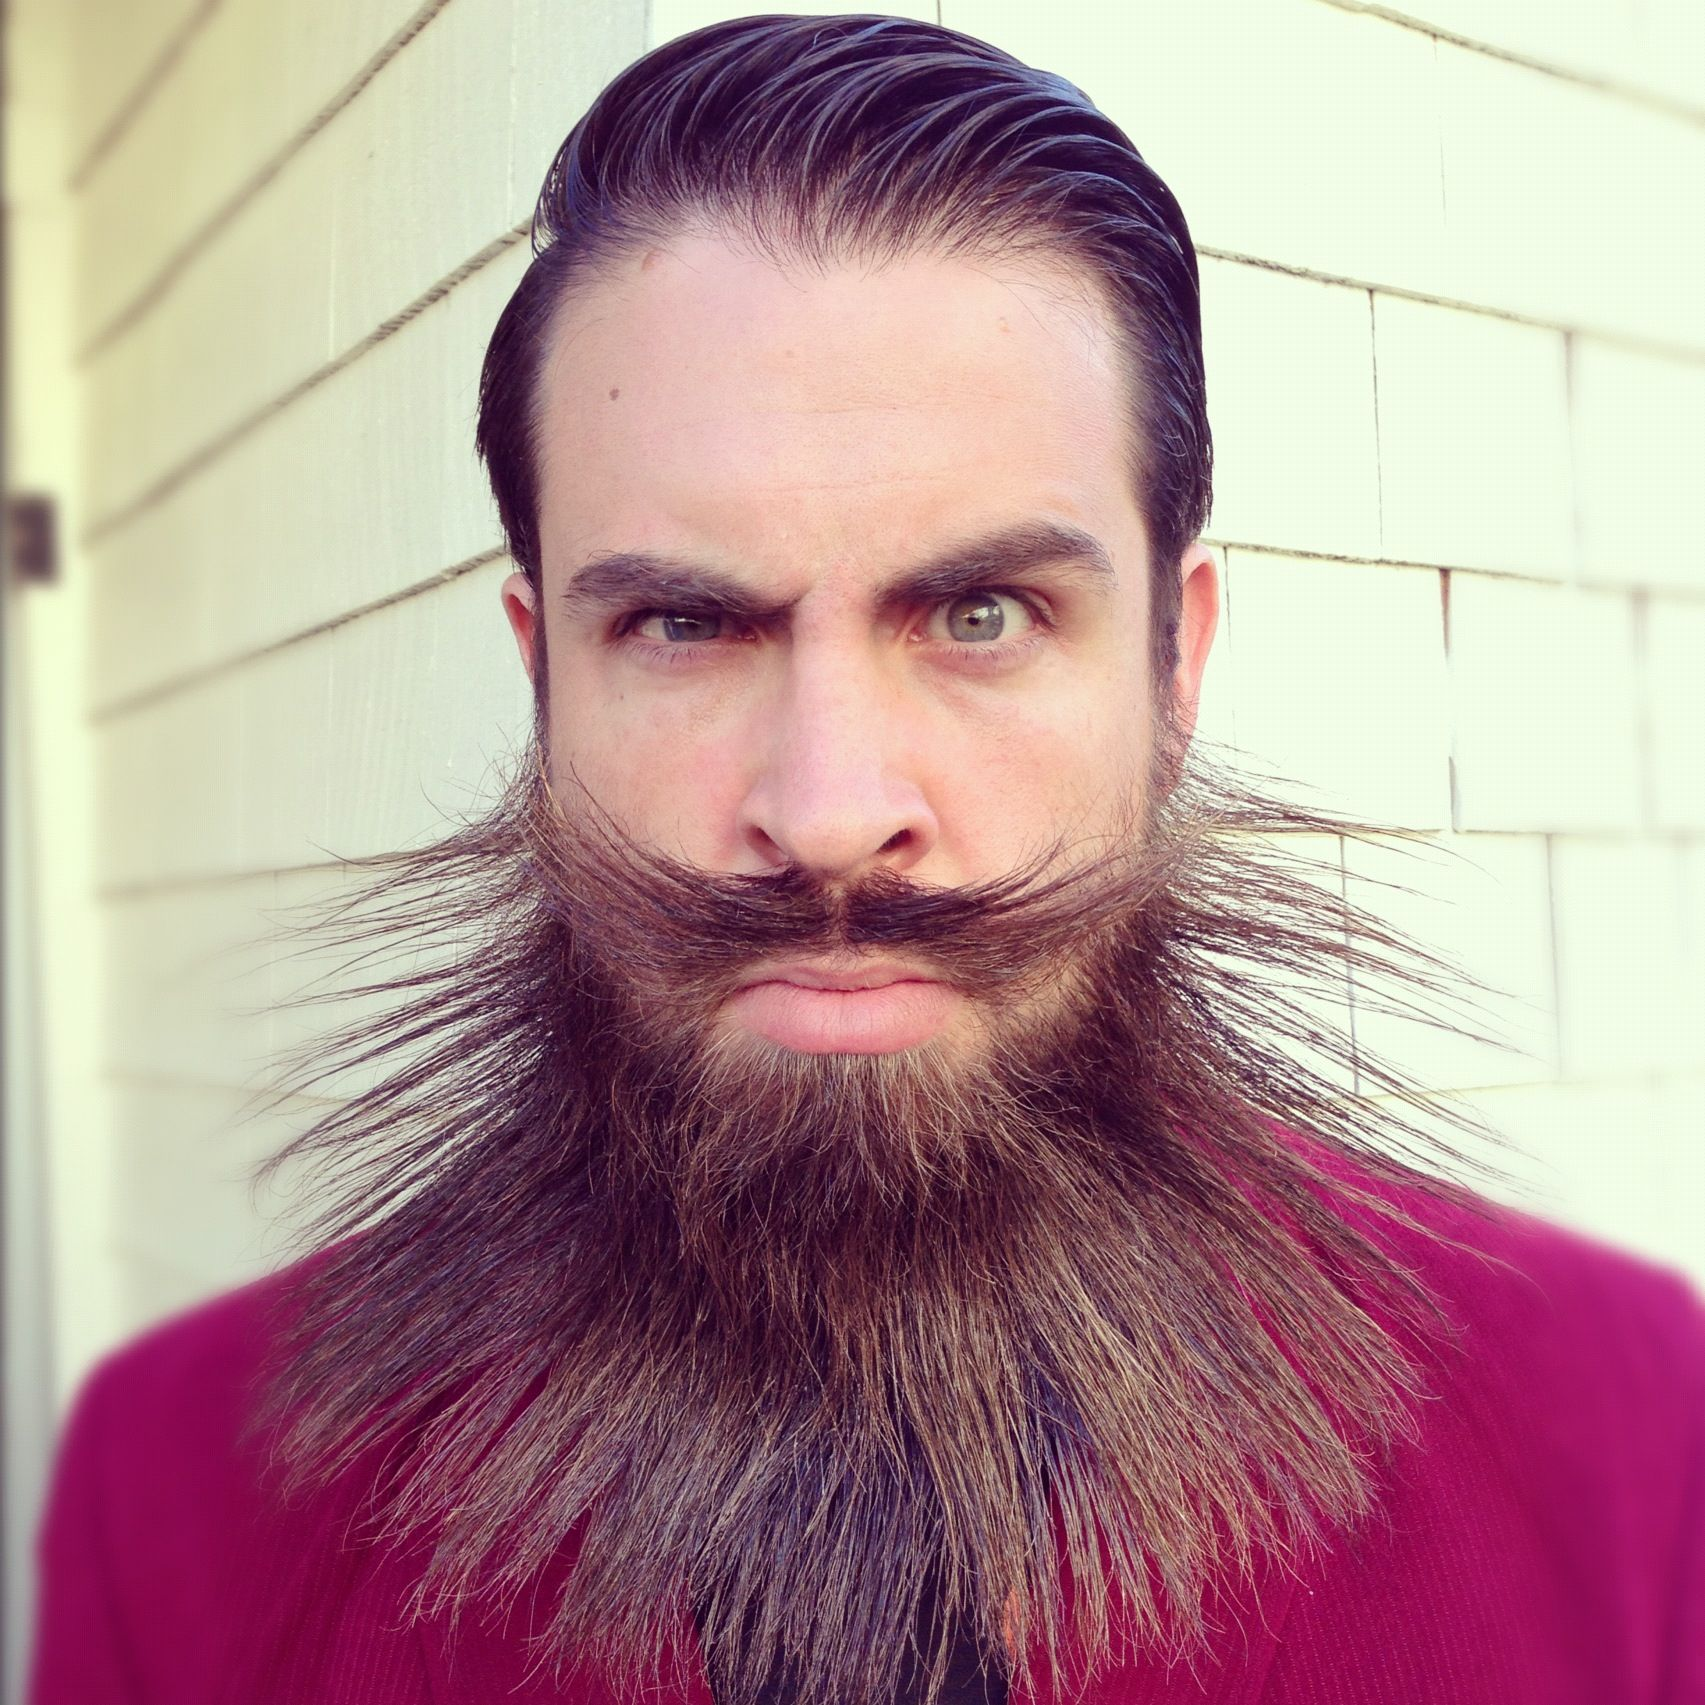 crazy fashionable beard design beard titled the manly main man mane hair art